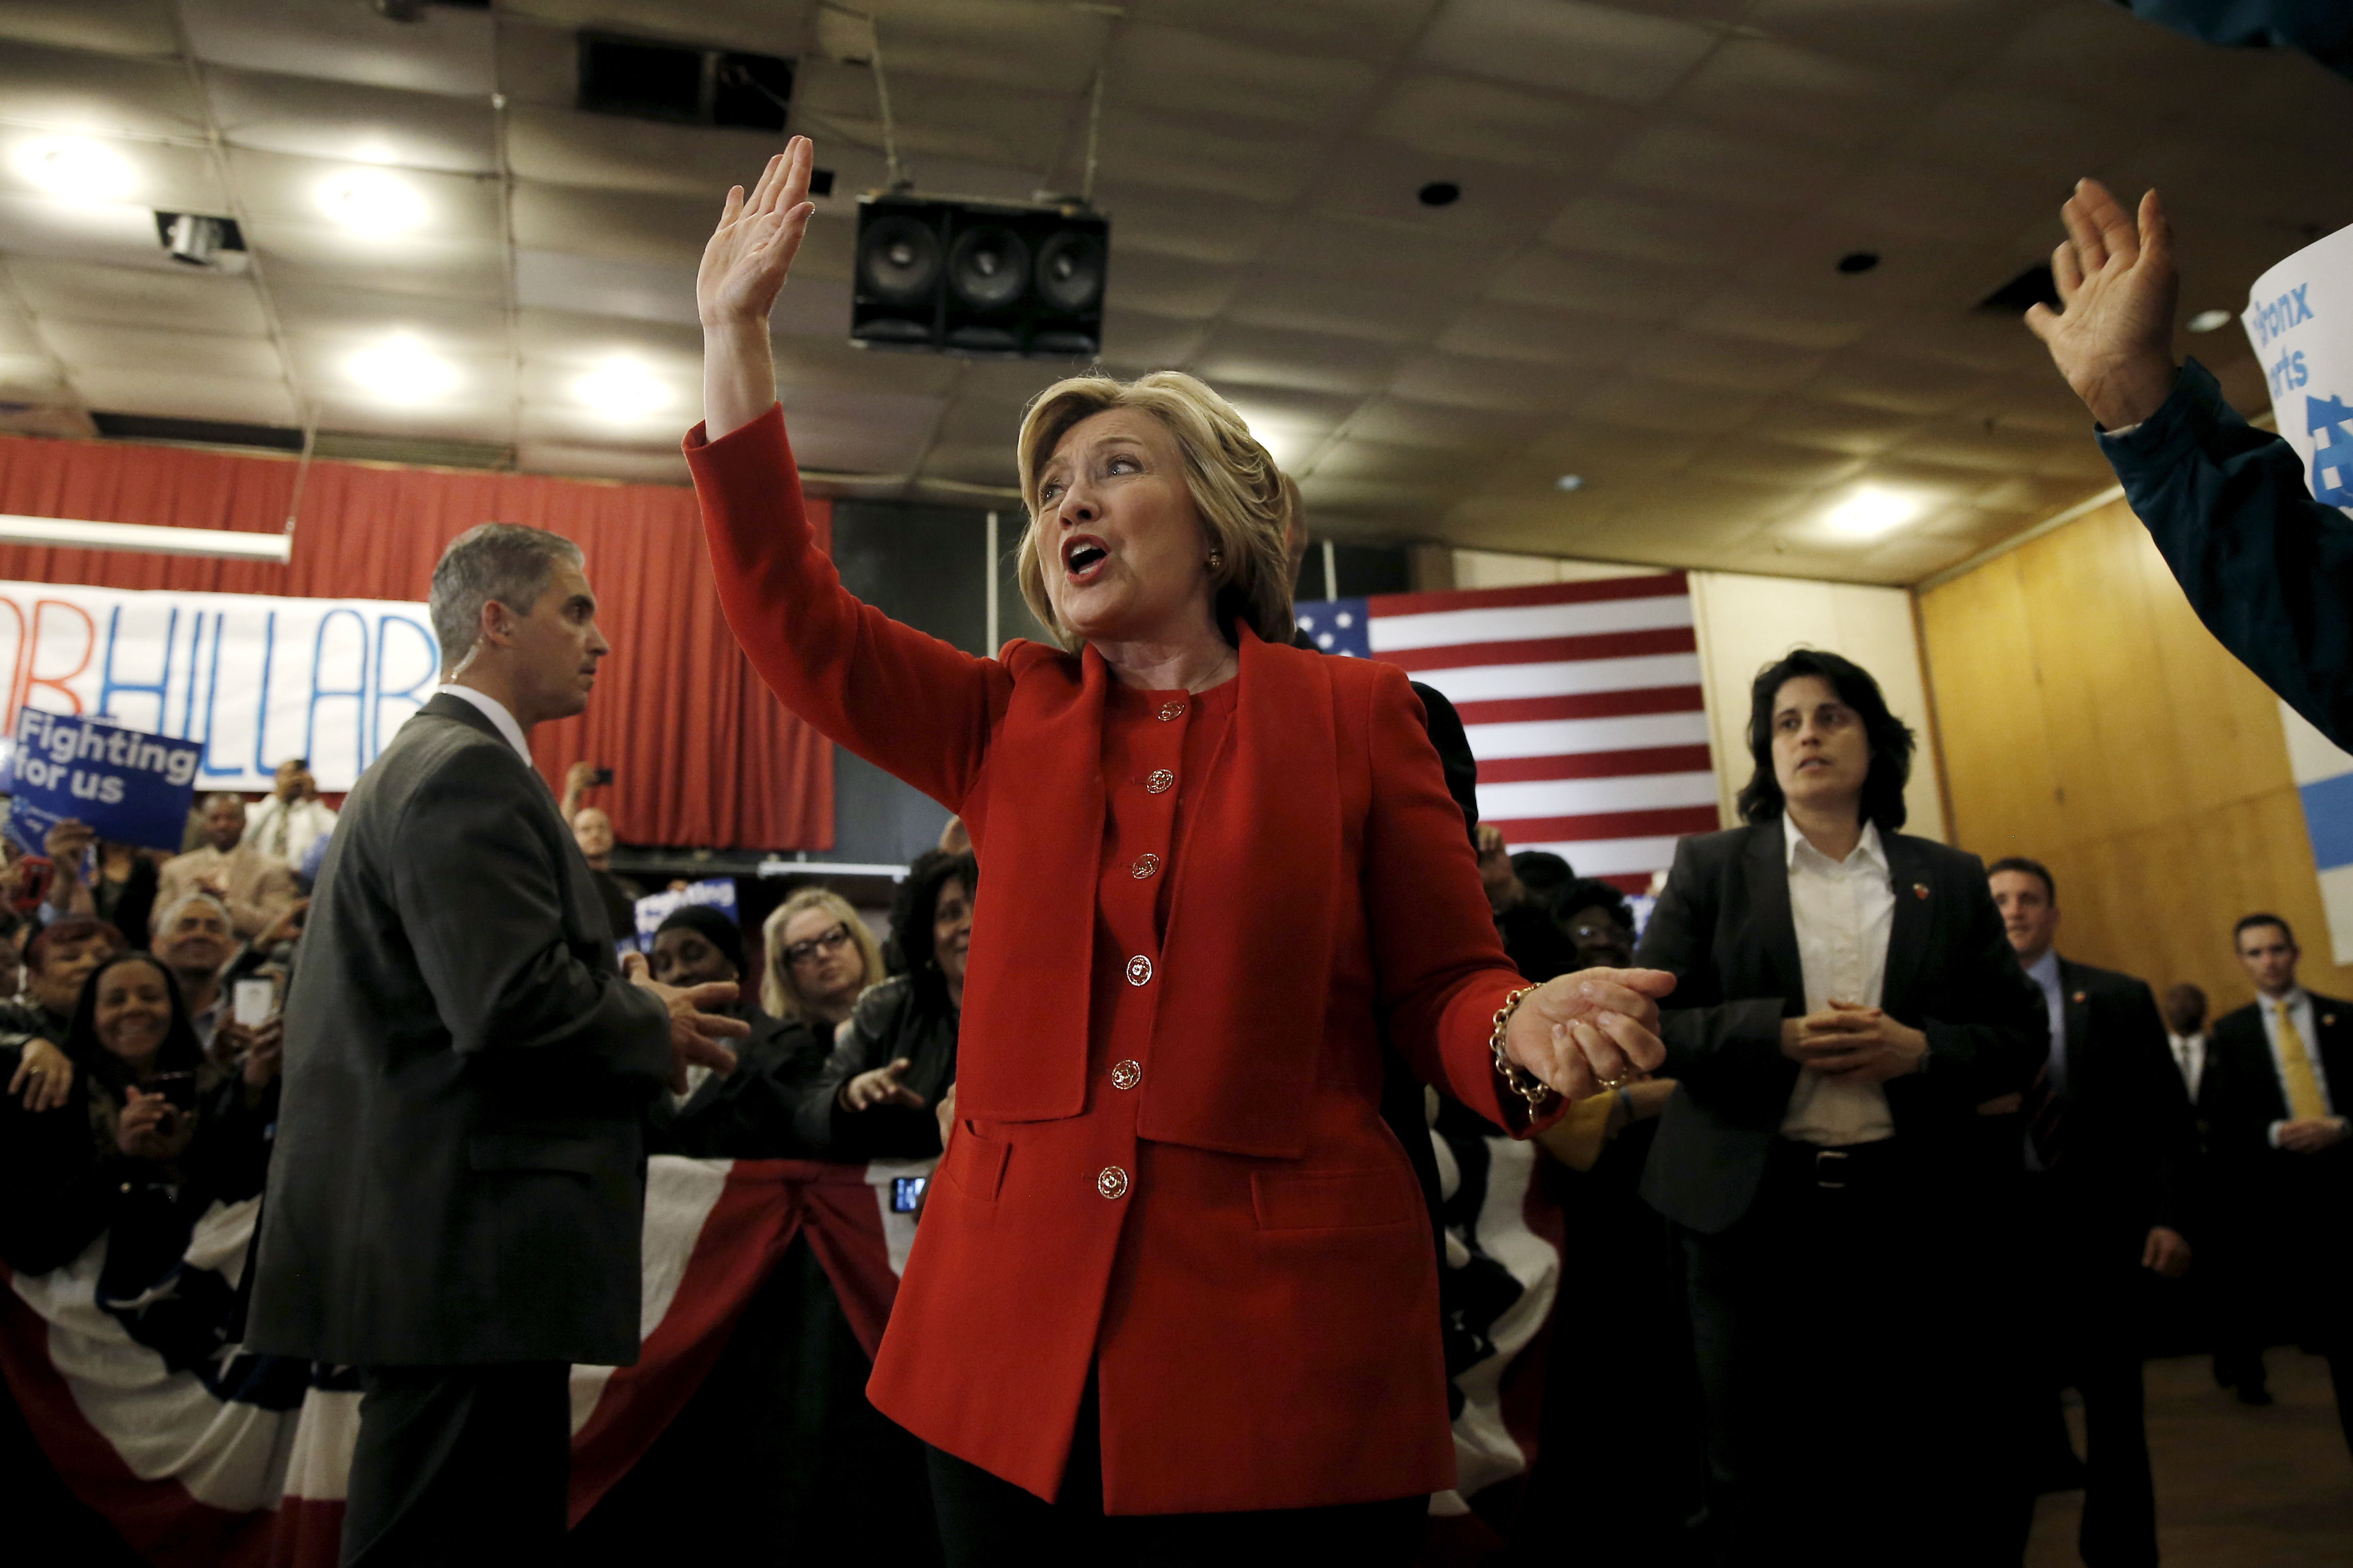 Democratic U.S. presidential candidate Hillary Clinton waves to supporters as she arrives at a campaign rally in the Bronx borough of New York City